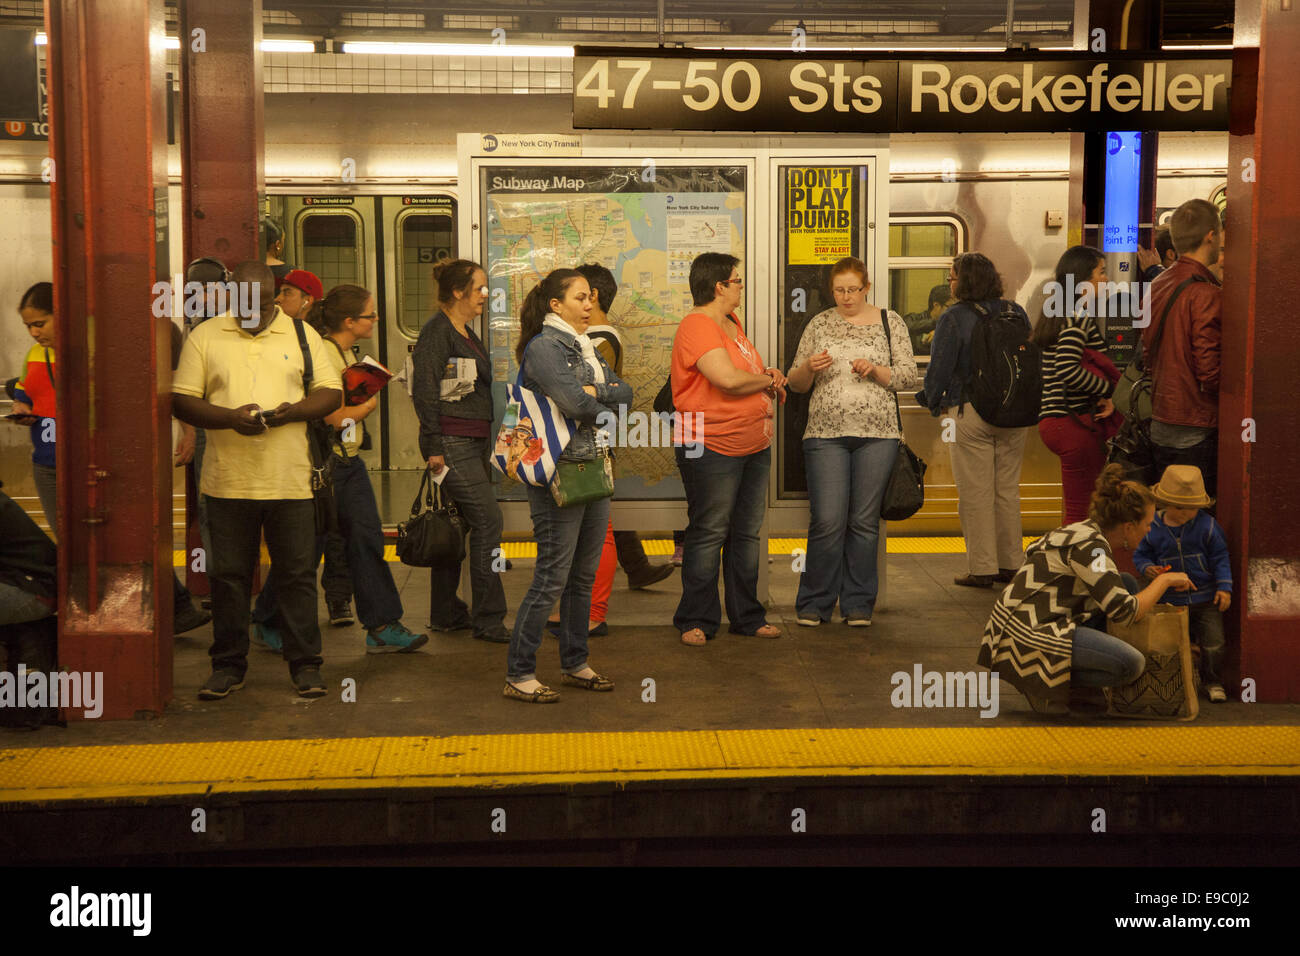 Subway Map To Rockefeller.Subway Platform At Rockefeller Center Nyc Stock Photo 74637306 Alamy